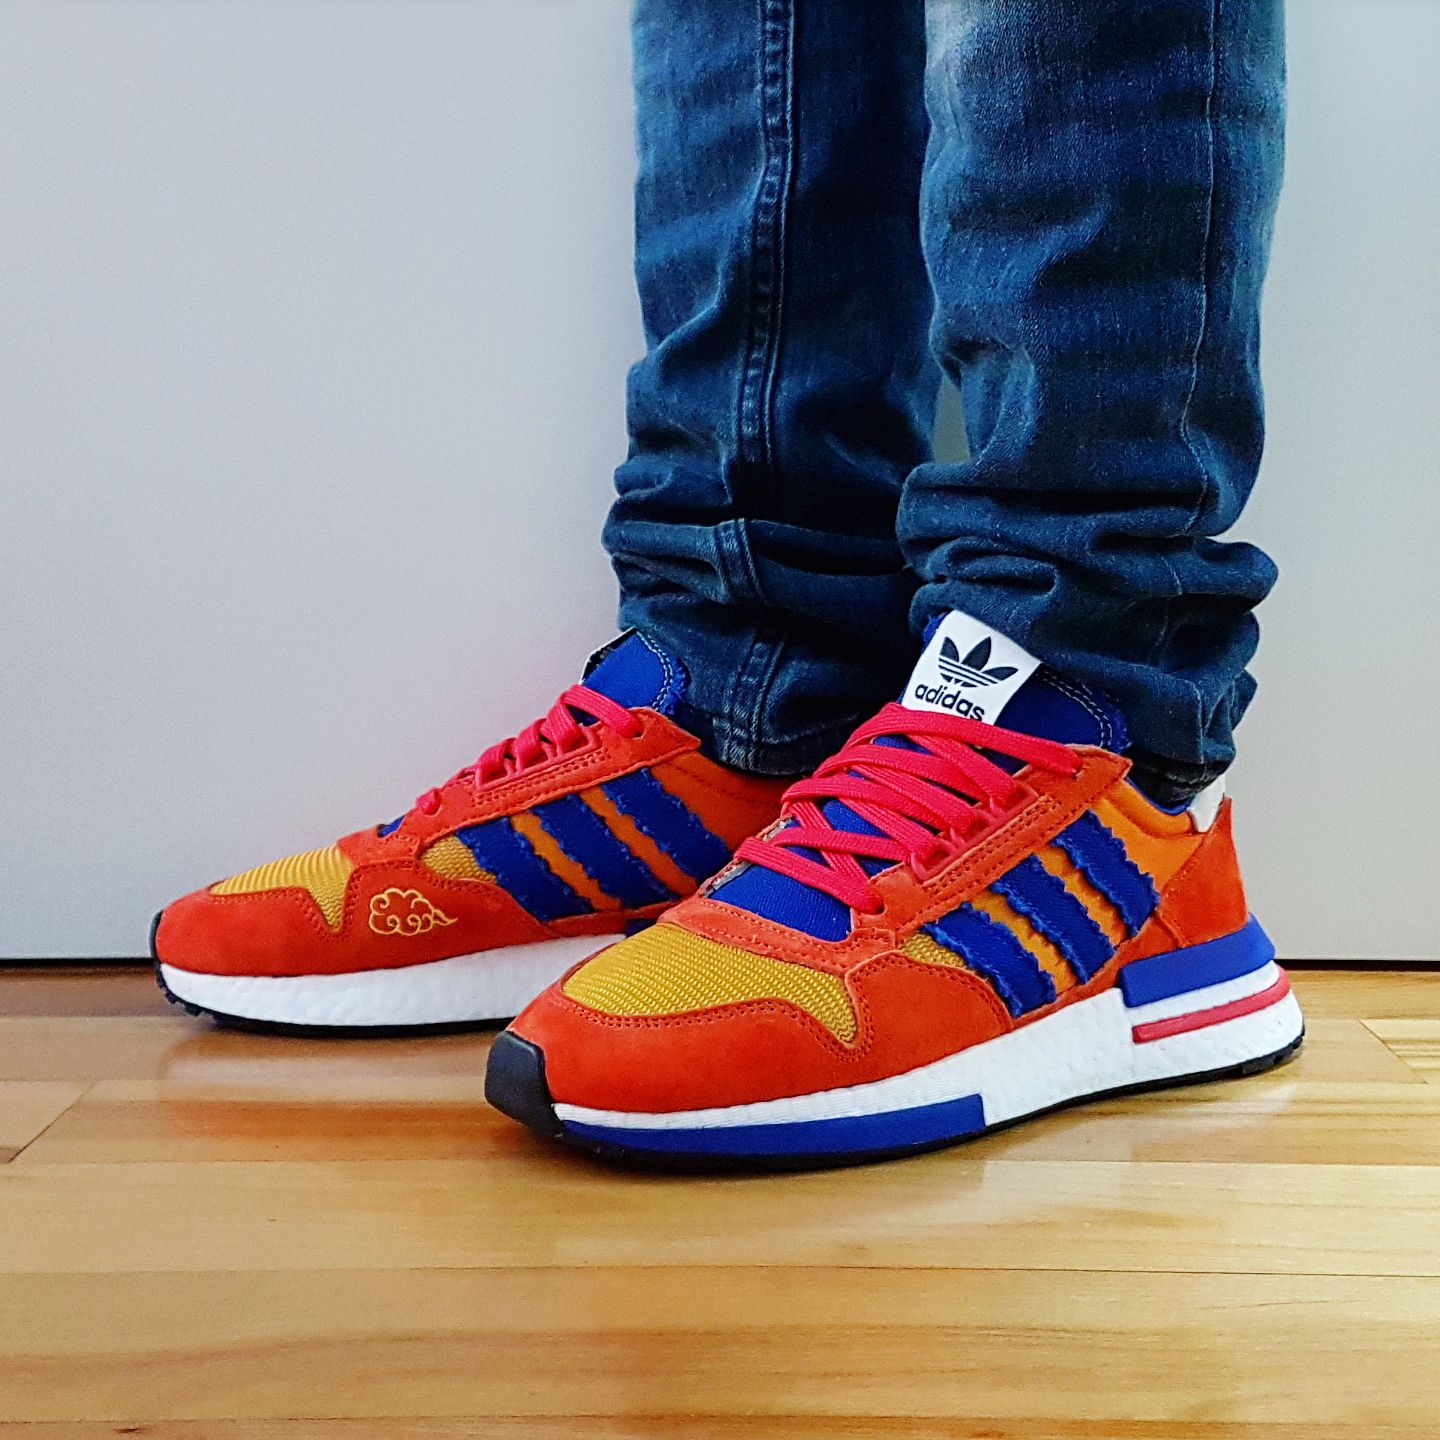 sneakers for cheap 15ba7 3b34d Go check out my Dragon Ball Z x adidas ZX 500 RM